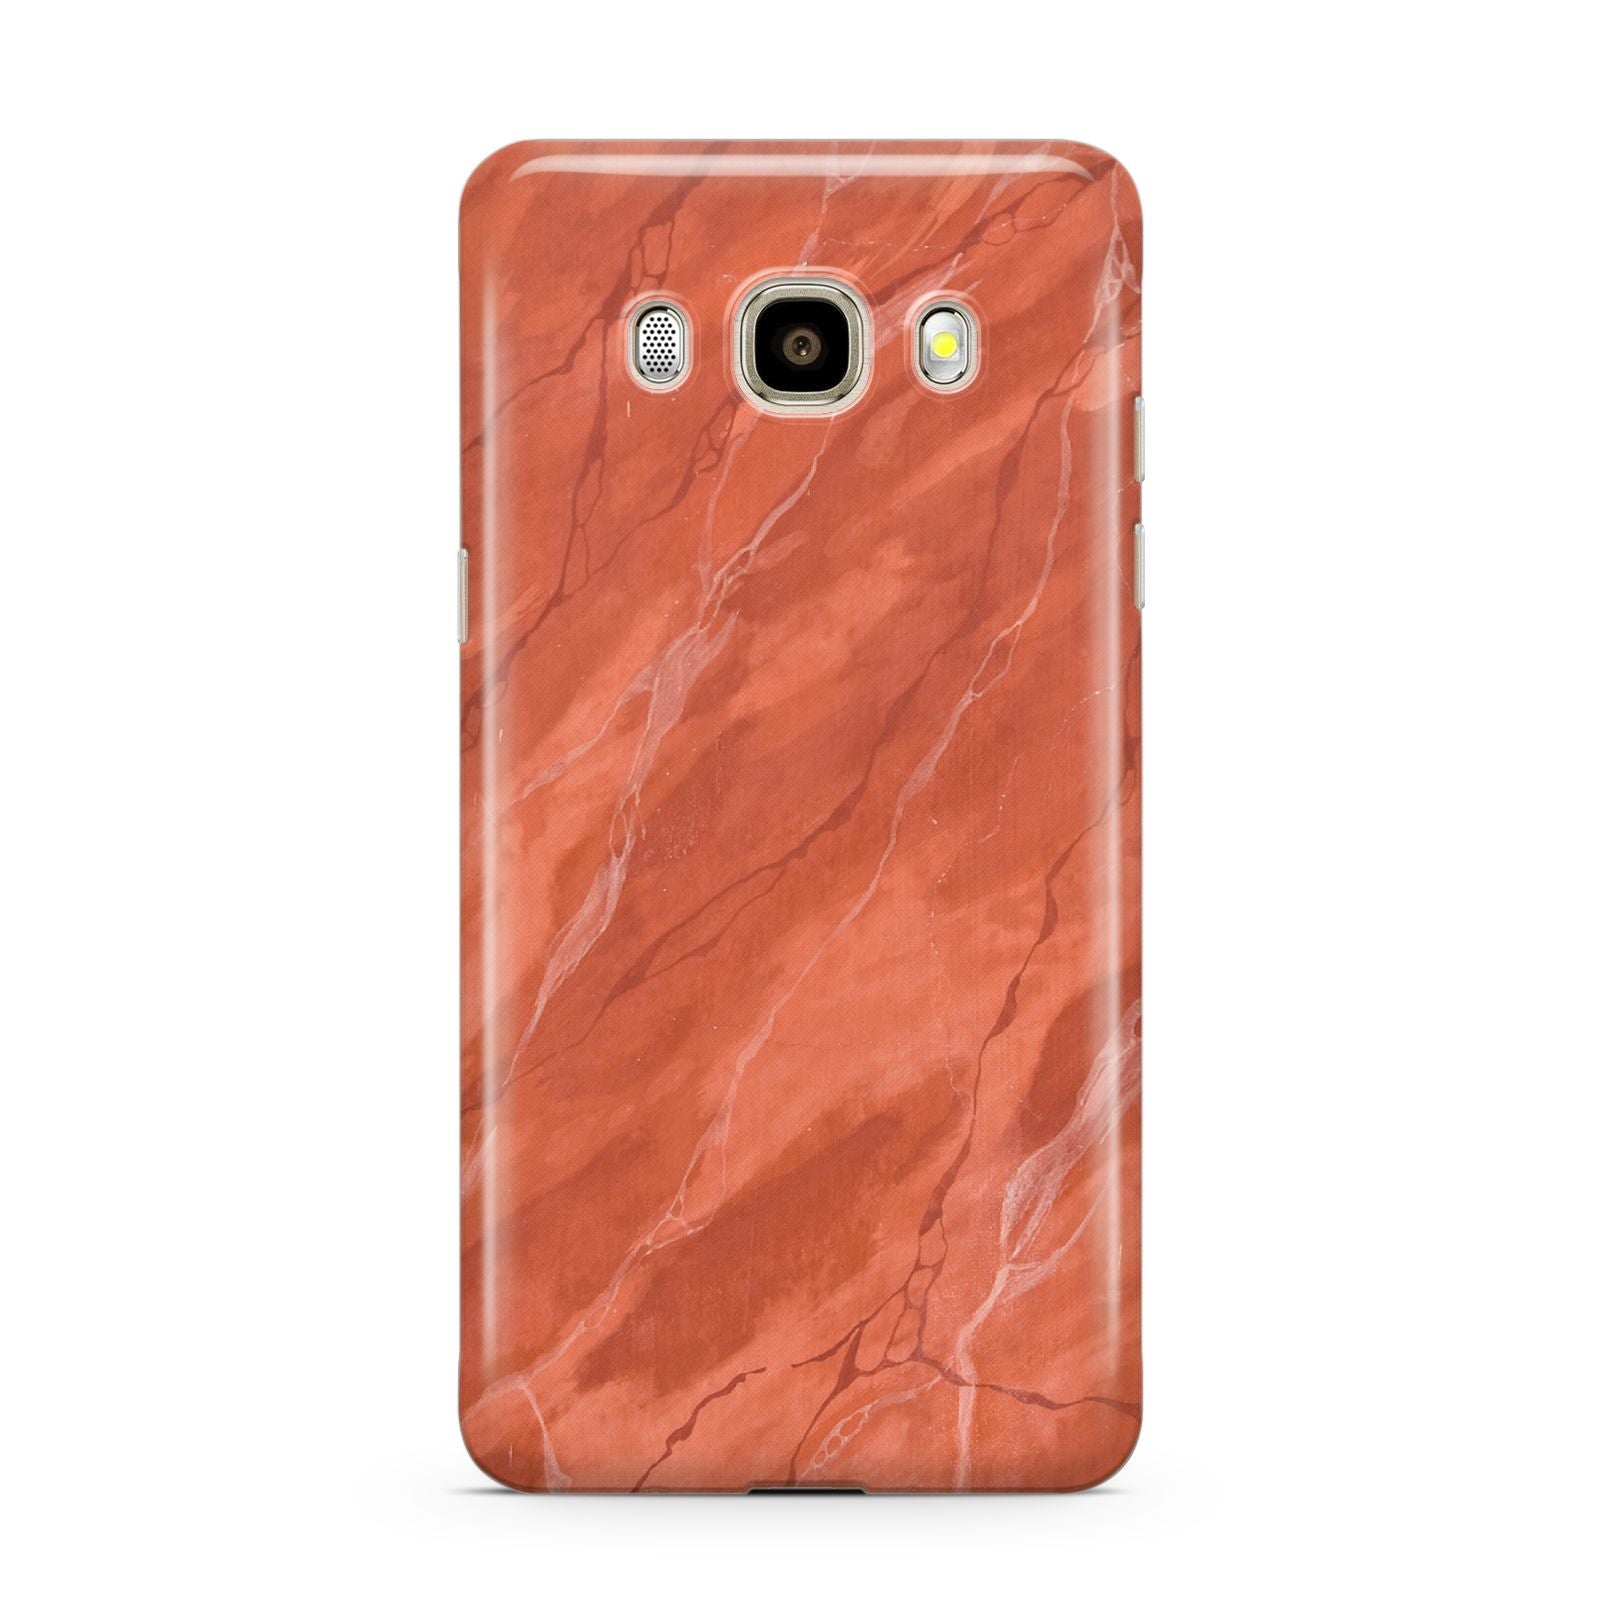 Faux Marble Red Orange Samsung Galaxy J7 2016 Case on gold phone